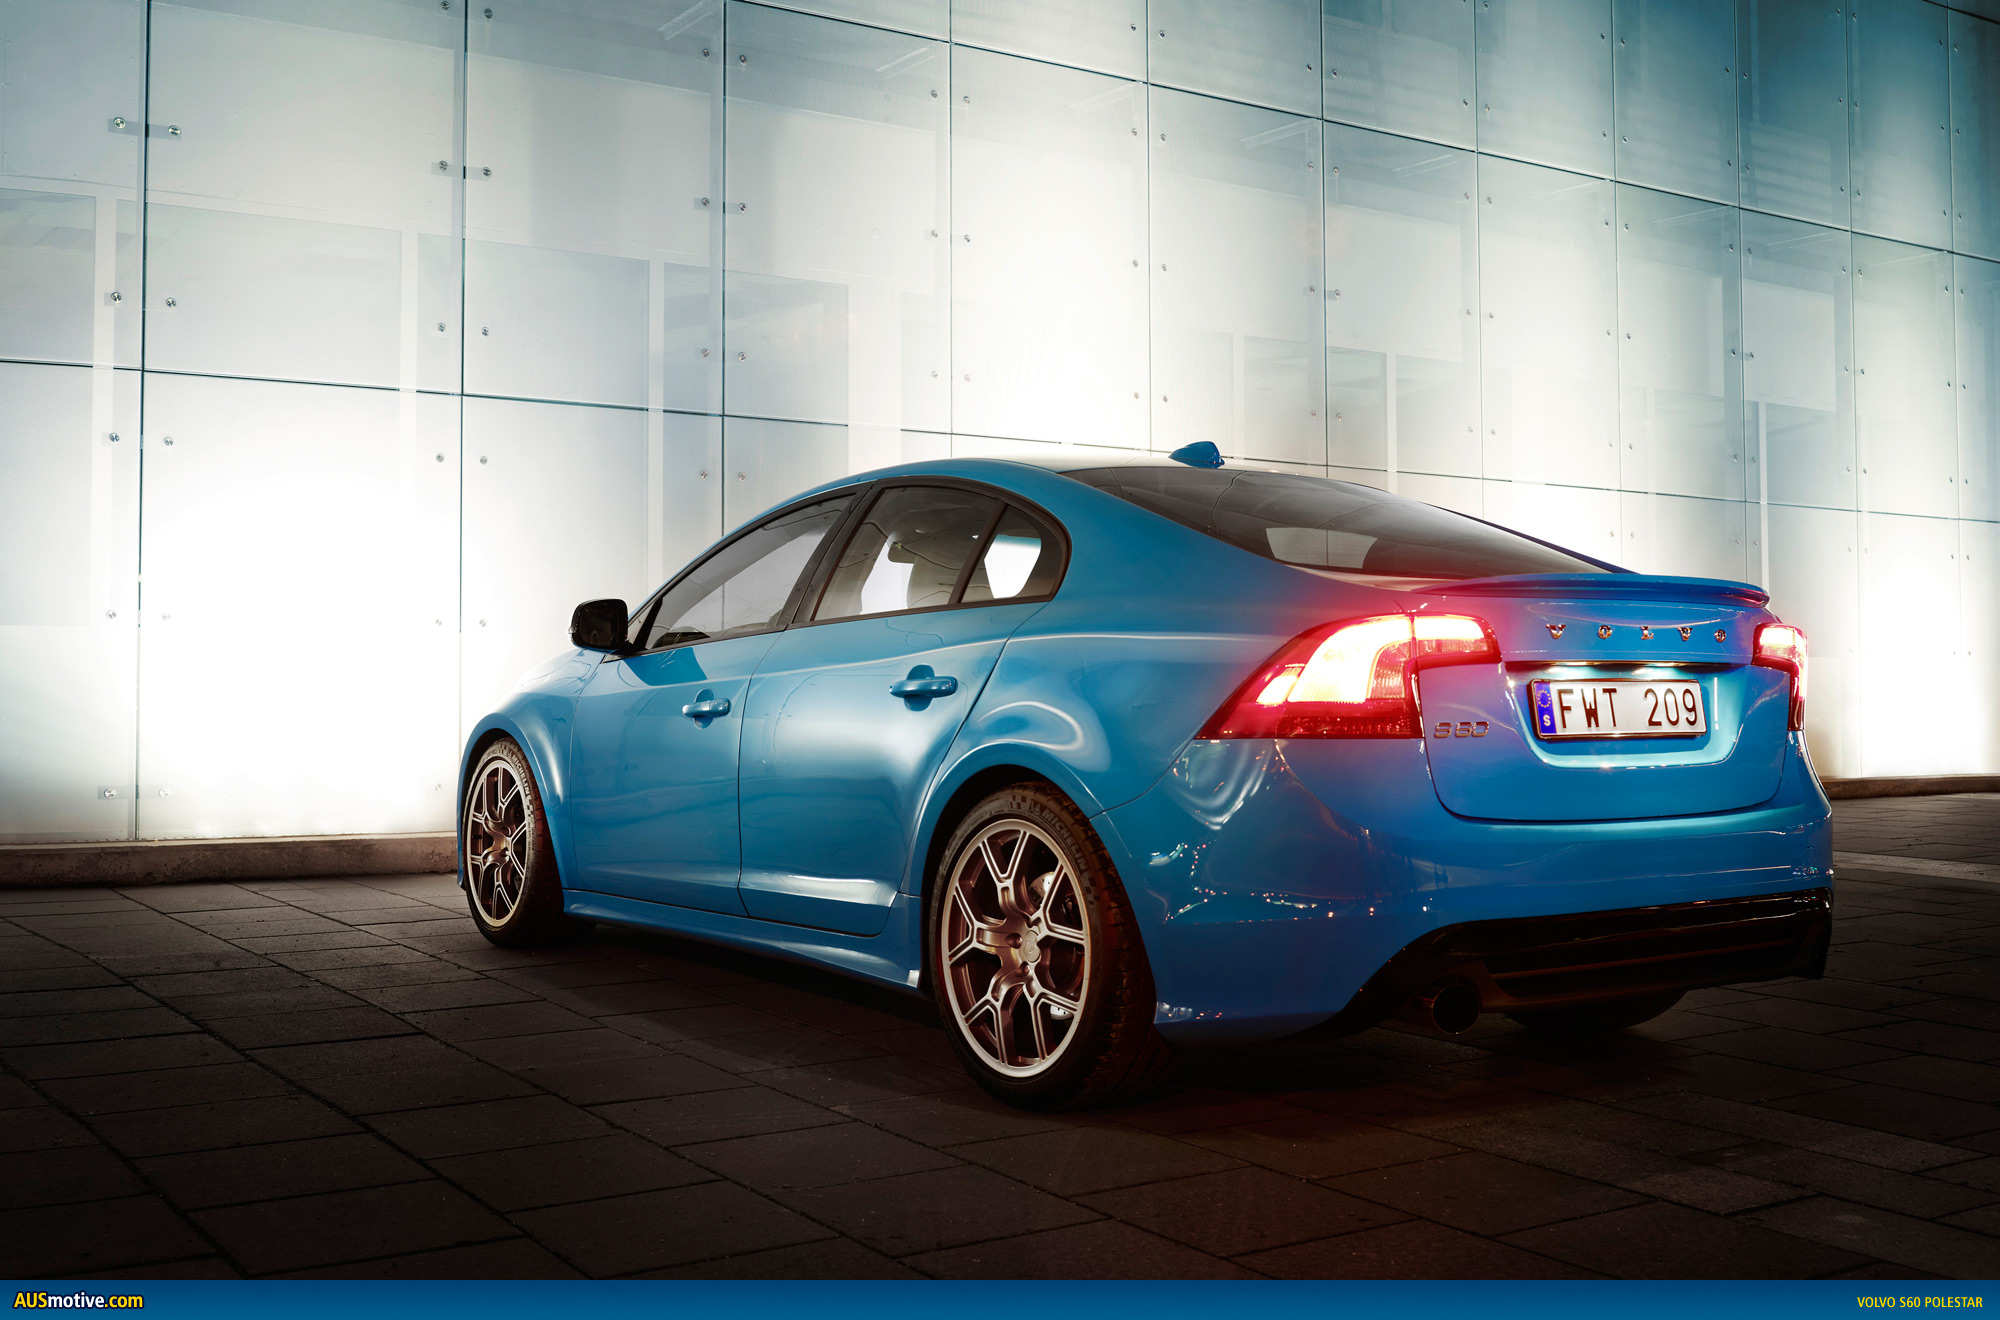 AUSmotive.com » 508hp Volvo S60 Polestar revealed